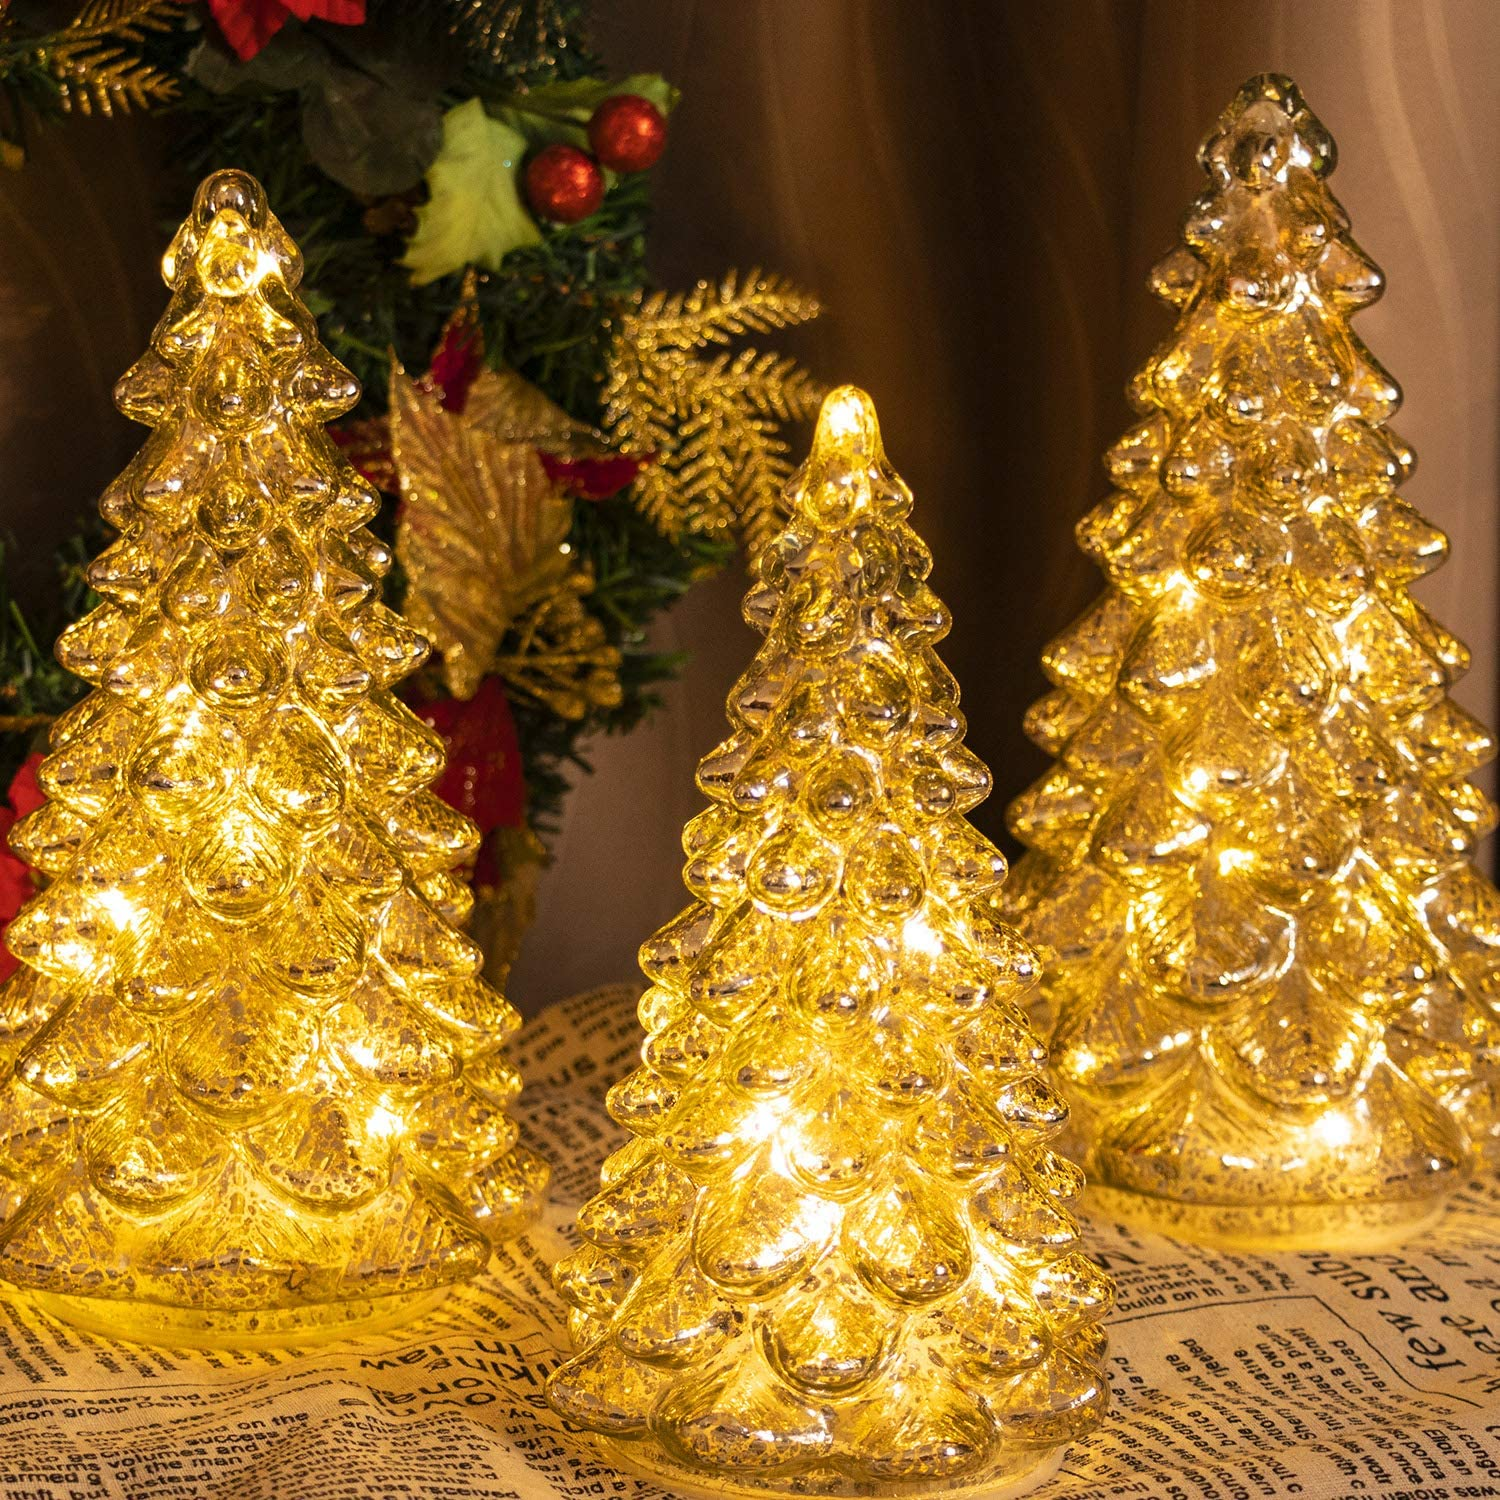 KI Store Lighted Glass Christmas Tree Figurine with Timer Set of 3 Mercury Glass Christmas DecorationBattery Operated for Centerpieces Window Tabletop Mantel